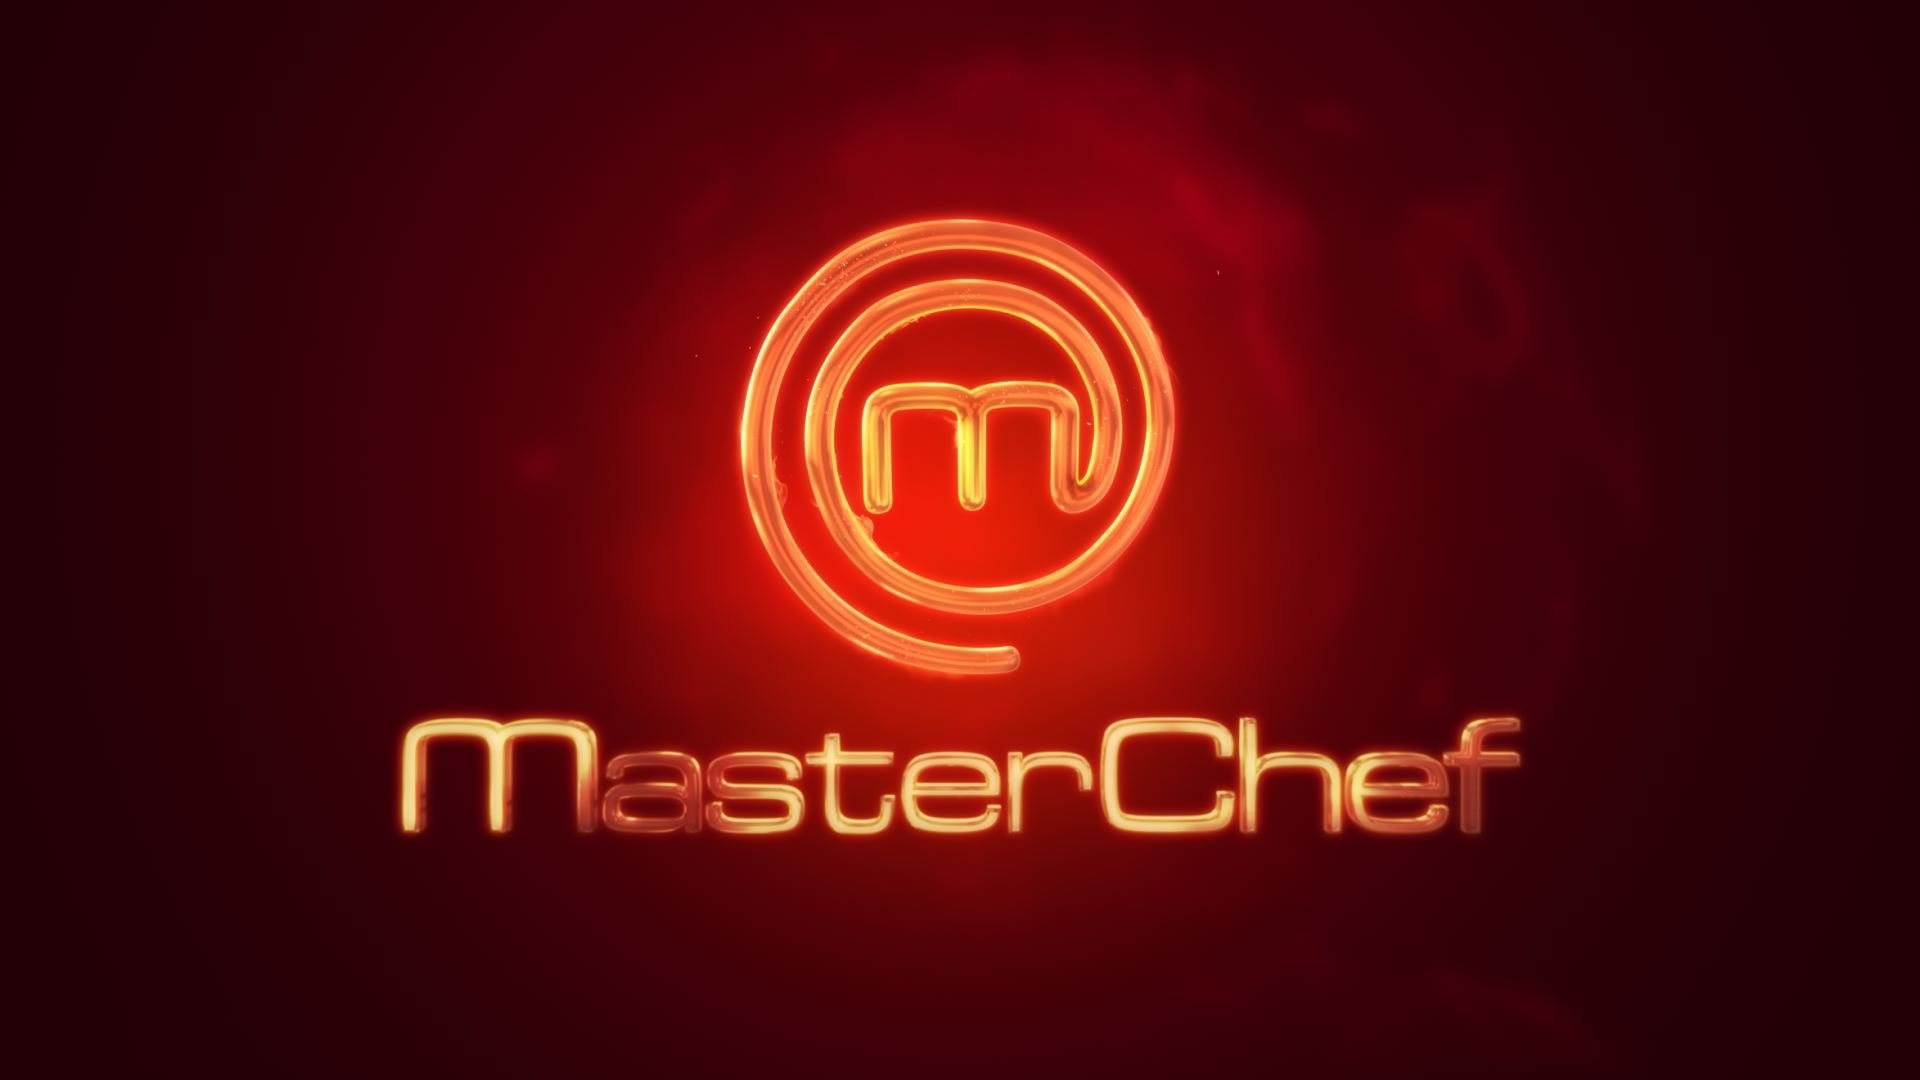 Chef Wallpapers HD Wallpapers Download Free Images Wallpaper [1000image.com]